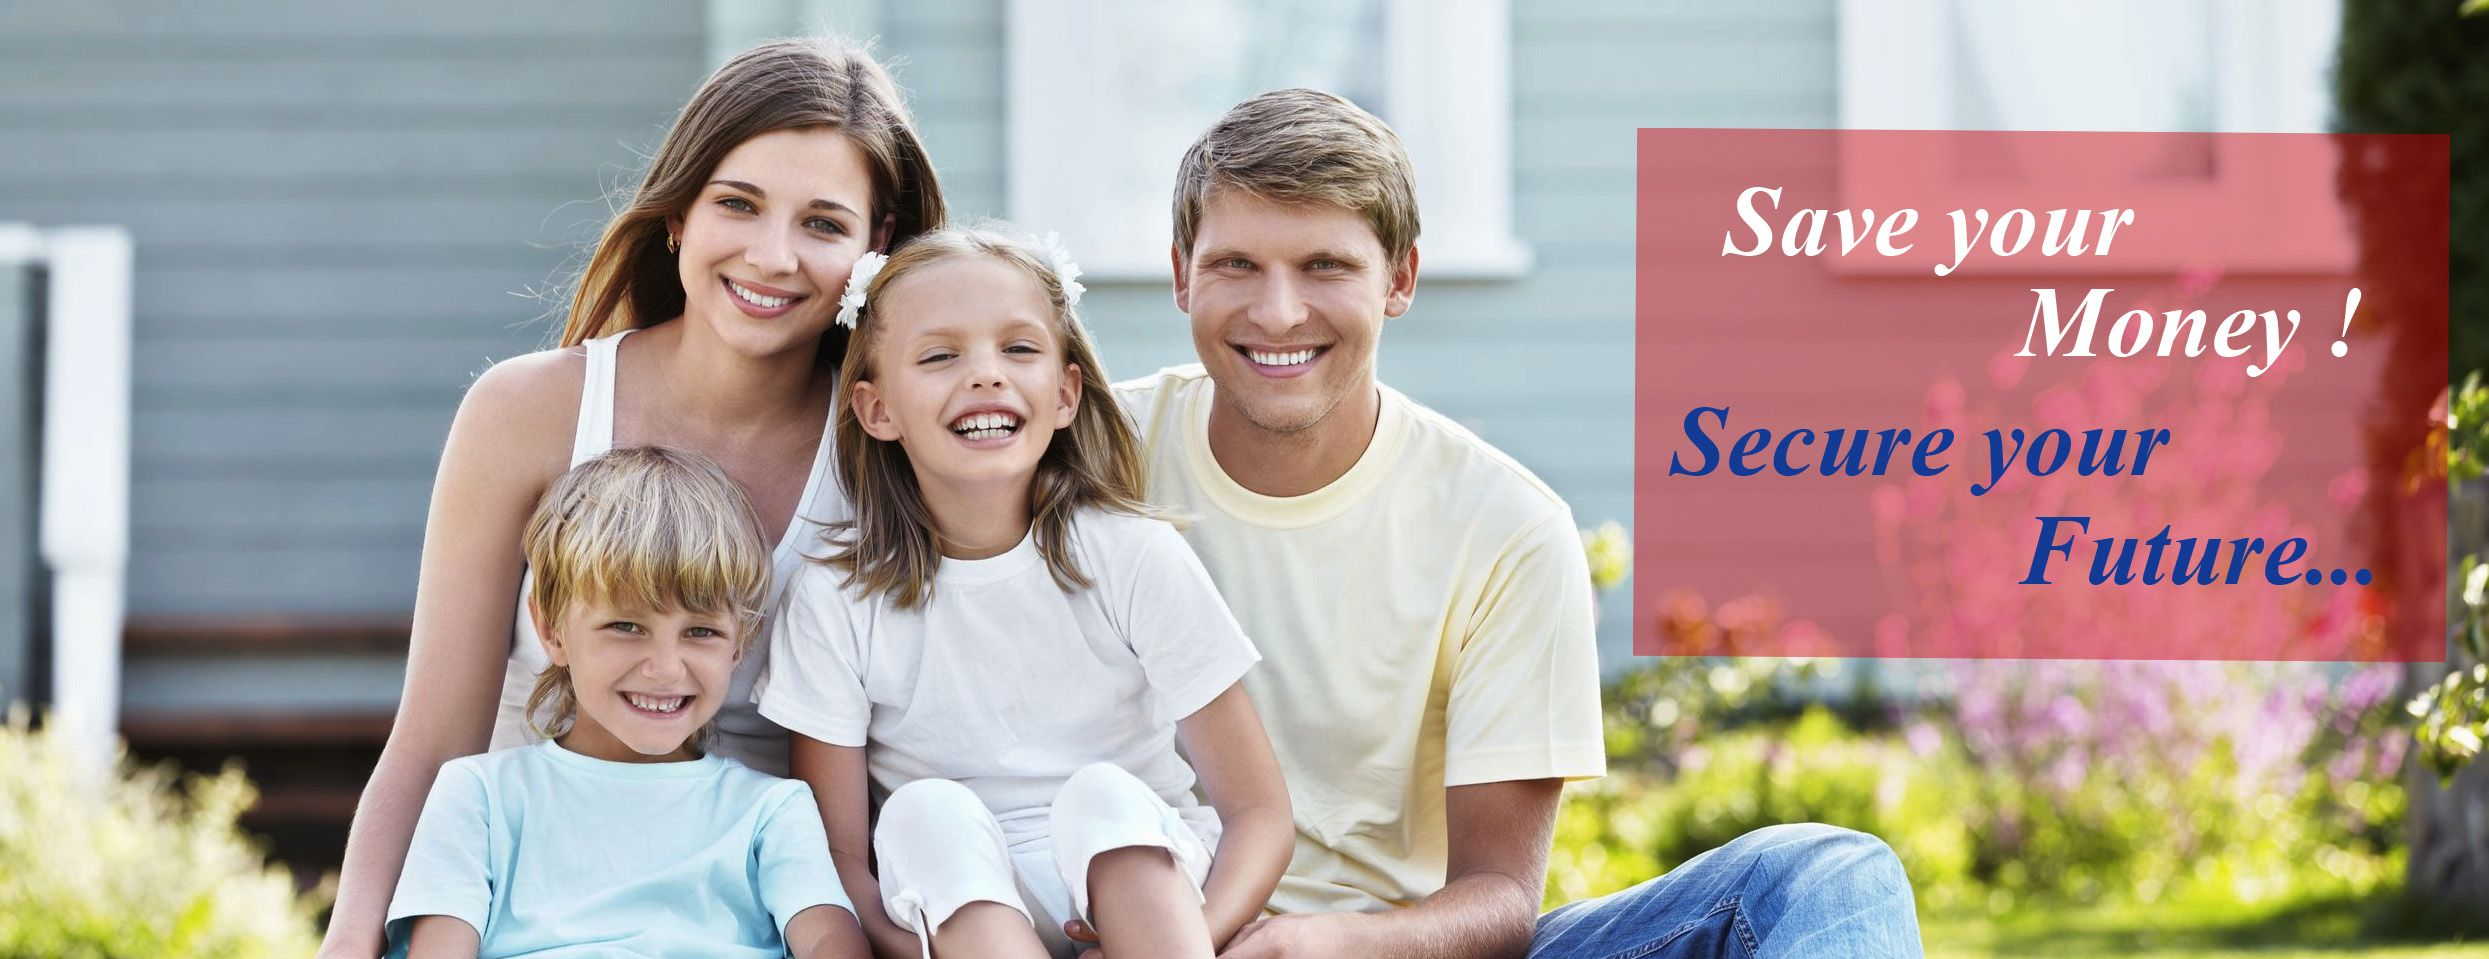 Lic Agents In Chennai We Are The Best Insurance Agent Lic In